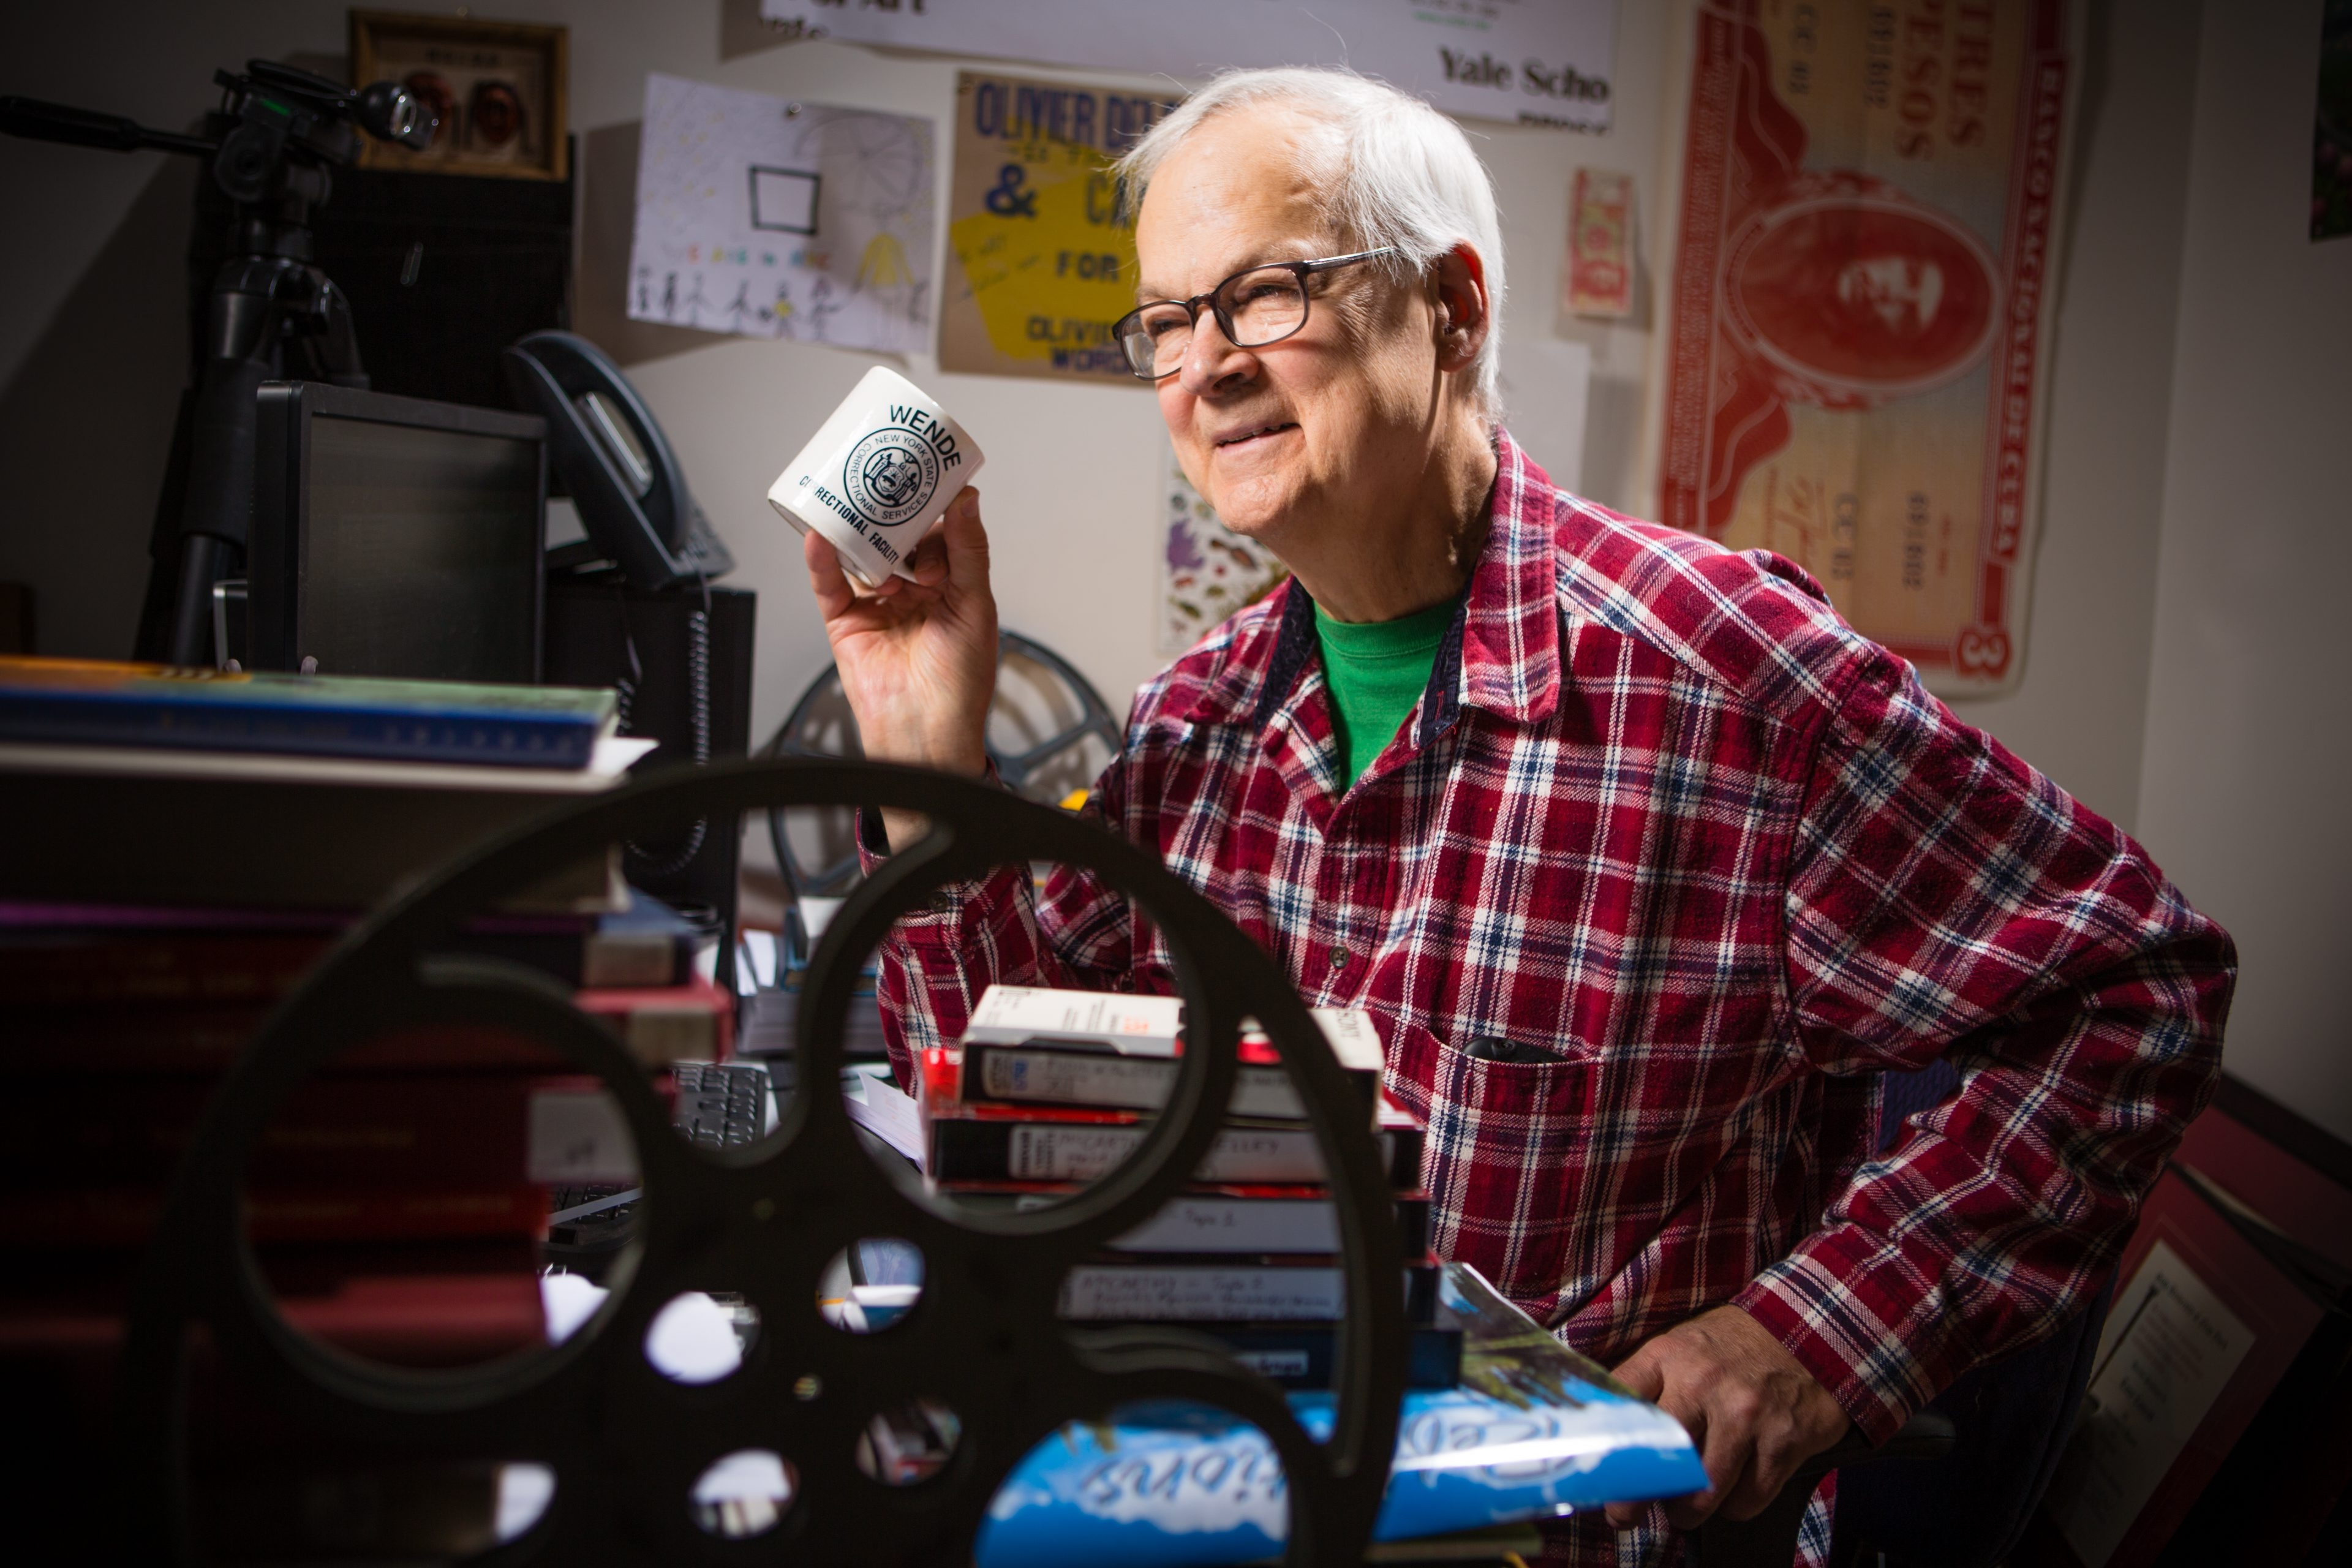 Internationally beloved artist and composer Tony Conrad, seen in his office at University at Buffalo, had an impact on thousands of students.